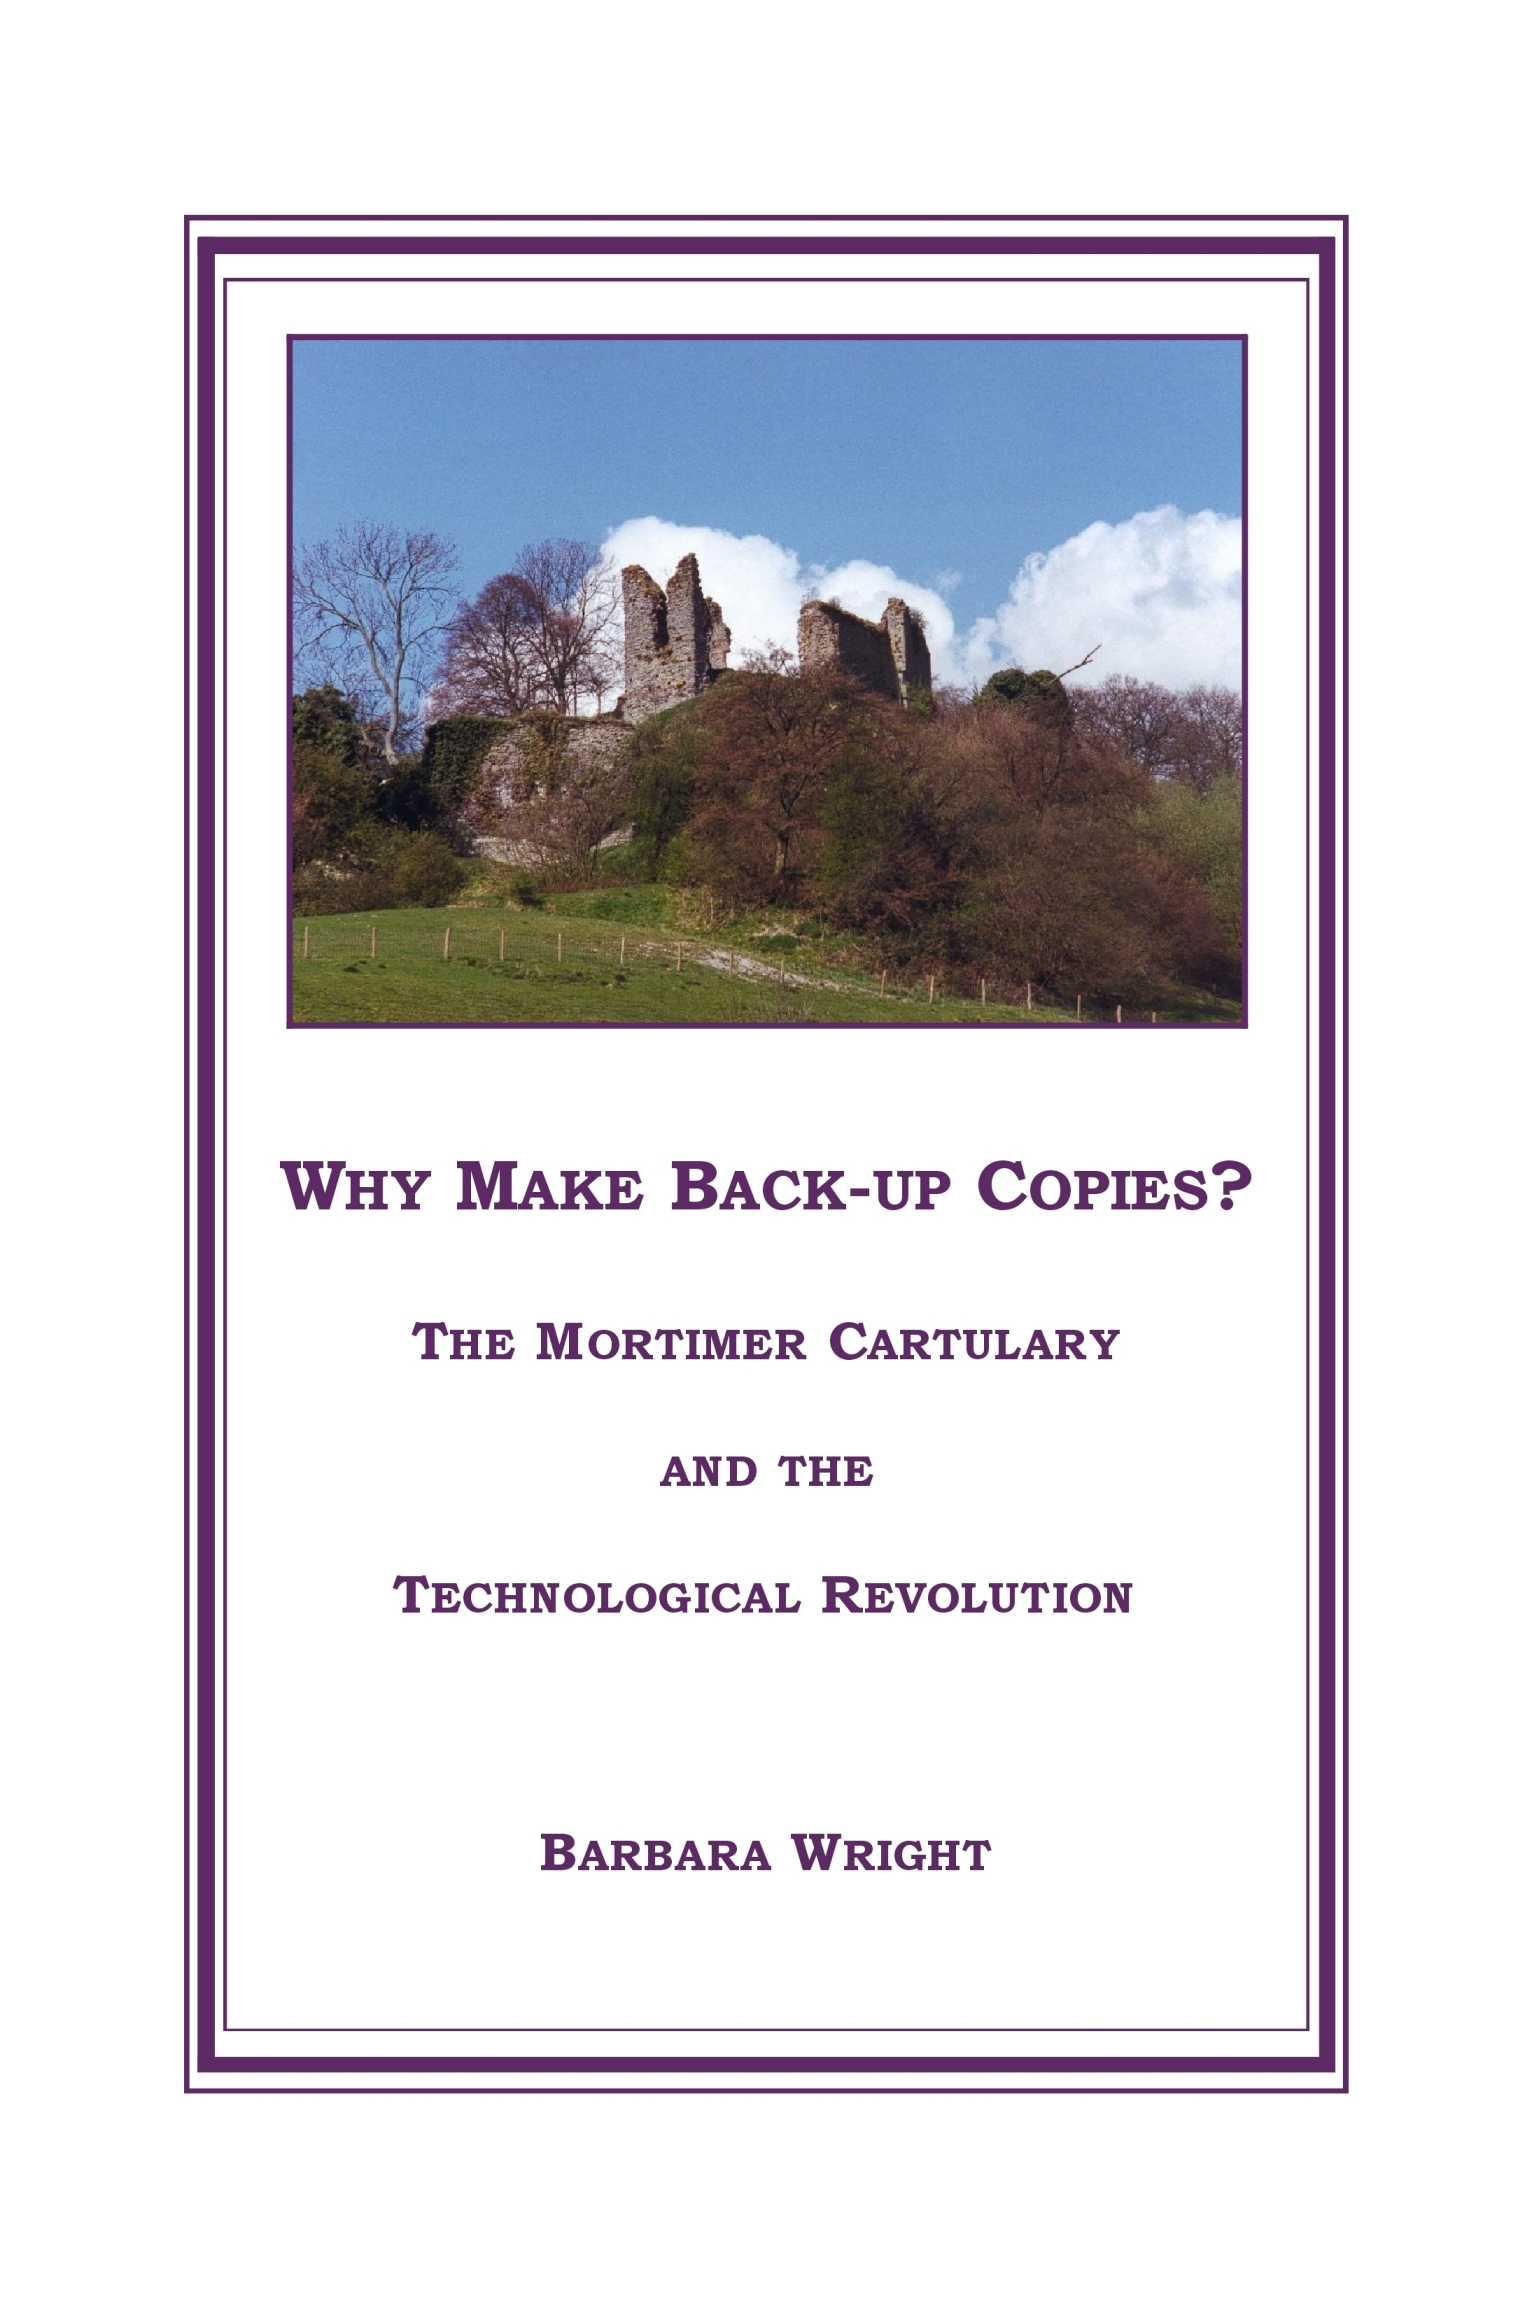 Why Make Back-up Copies?  The Mortimer Cartulary and the Technological Revolution